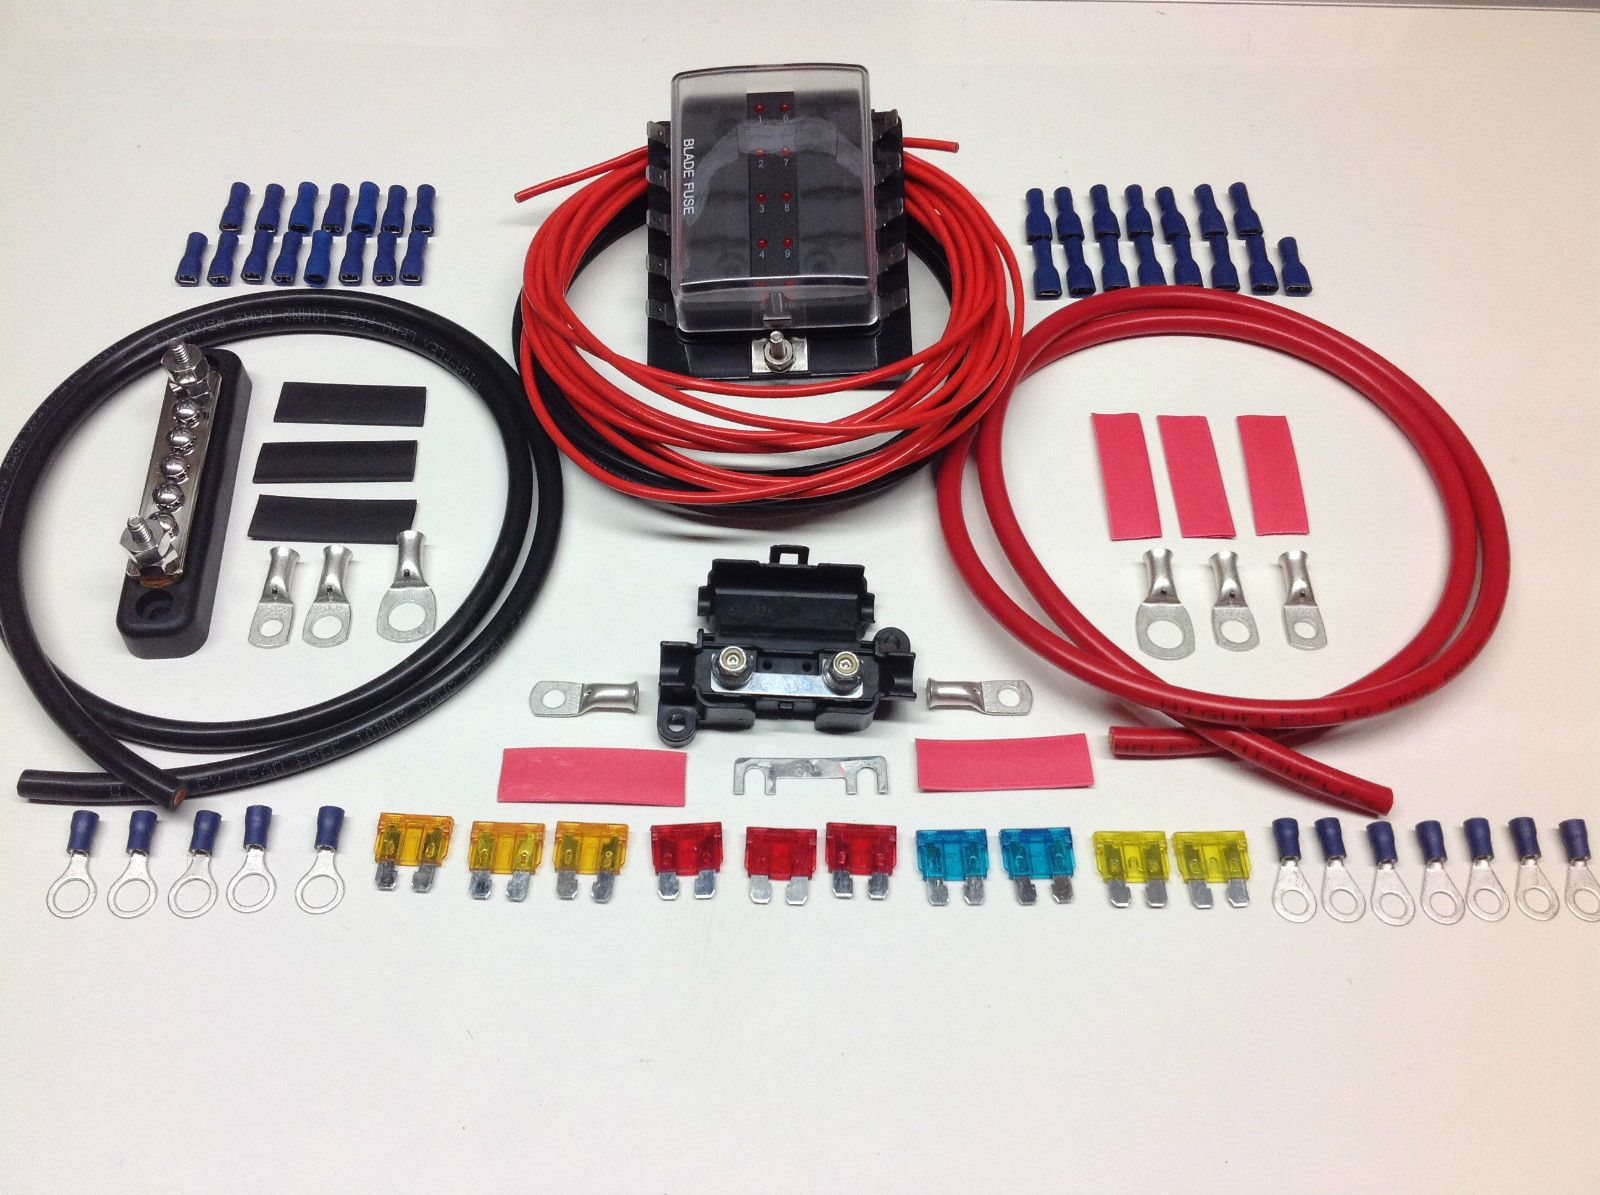 10 way fuse box distribution kit with negative bus bar cable terminals fuses 1097 p 10 way fuse box distribution kit with negative bus bar cable distribution fuse board at eliteediting.co